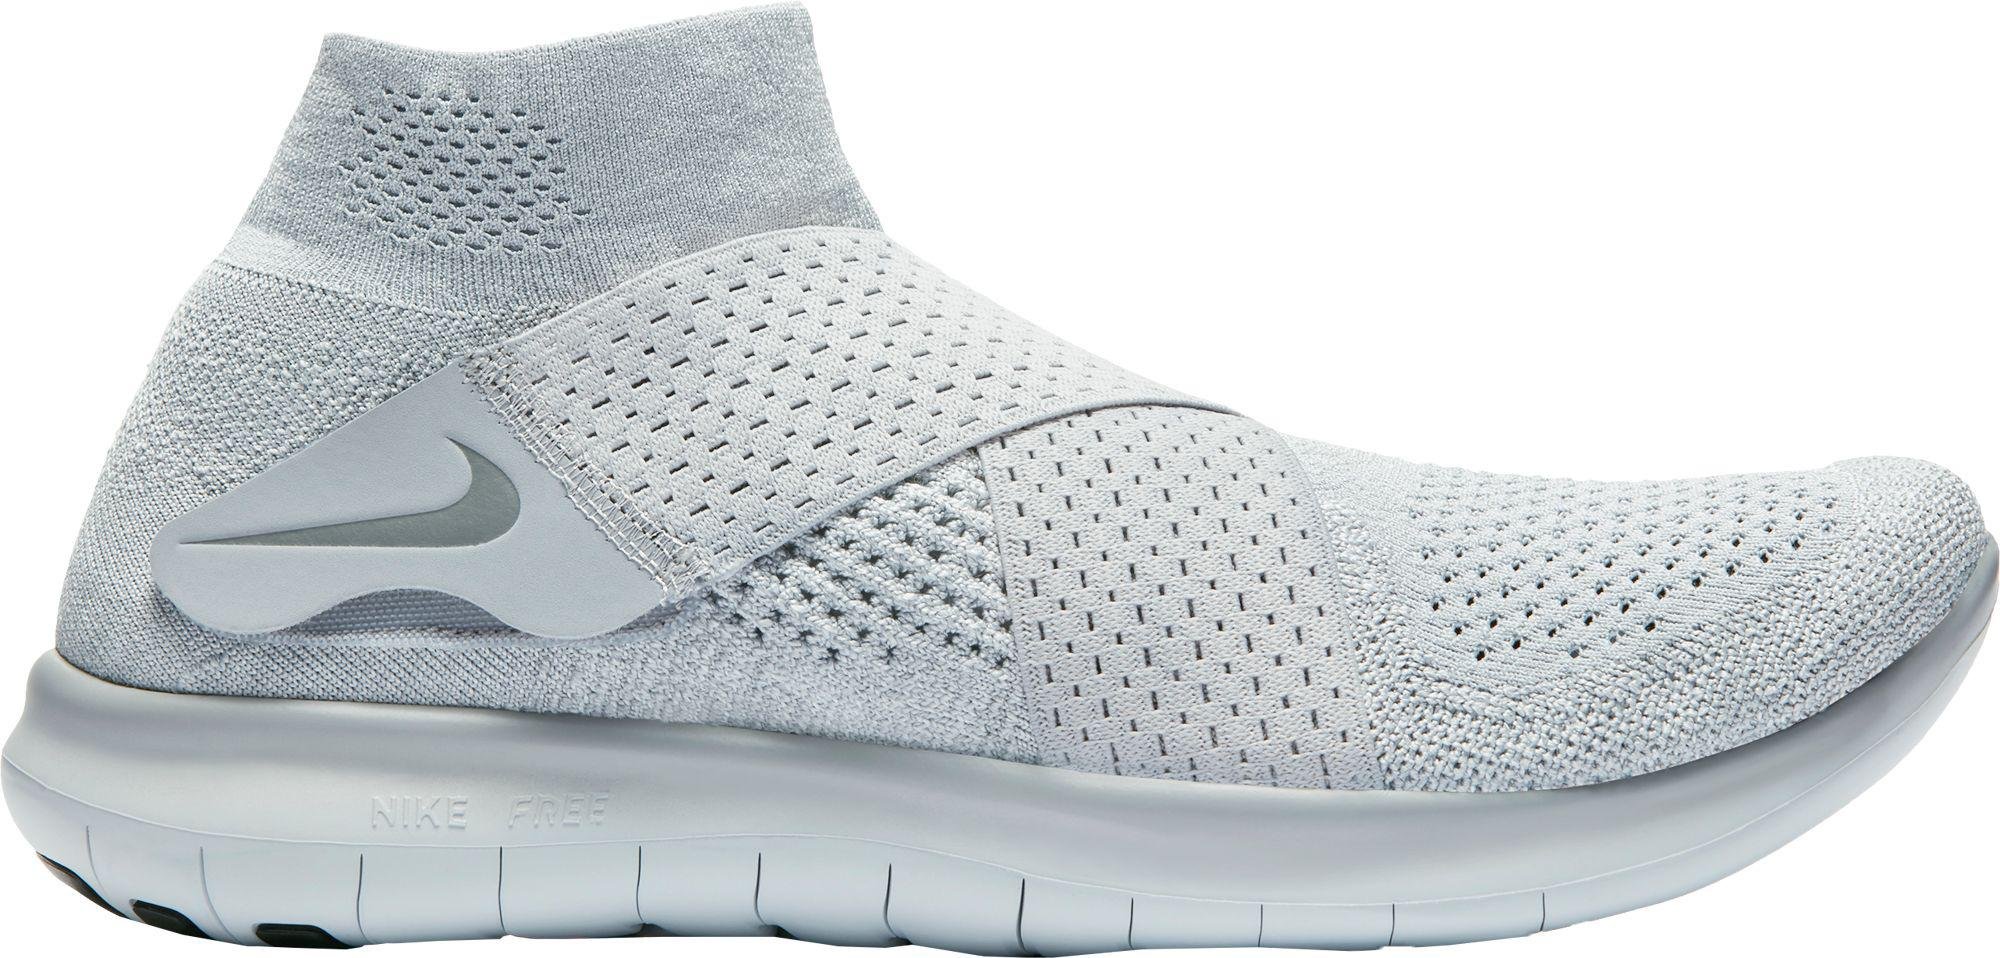 2d6259a52839 Lyst - Nike Free Rn Motion Flyknit 2 Running Shoes in Gray for Men